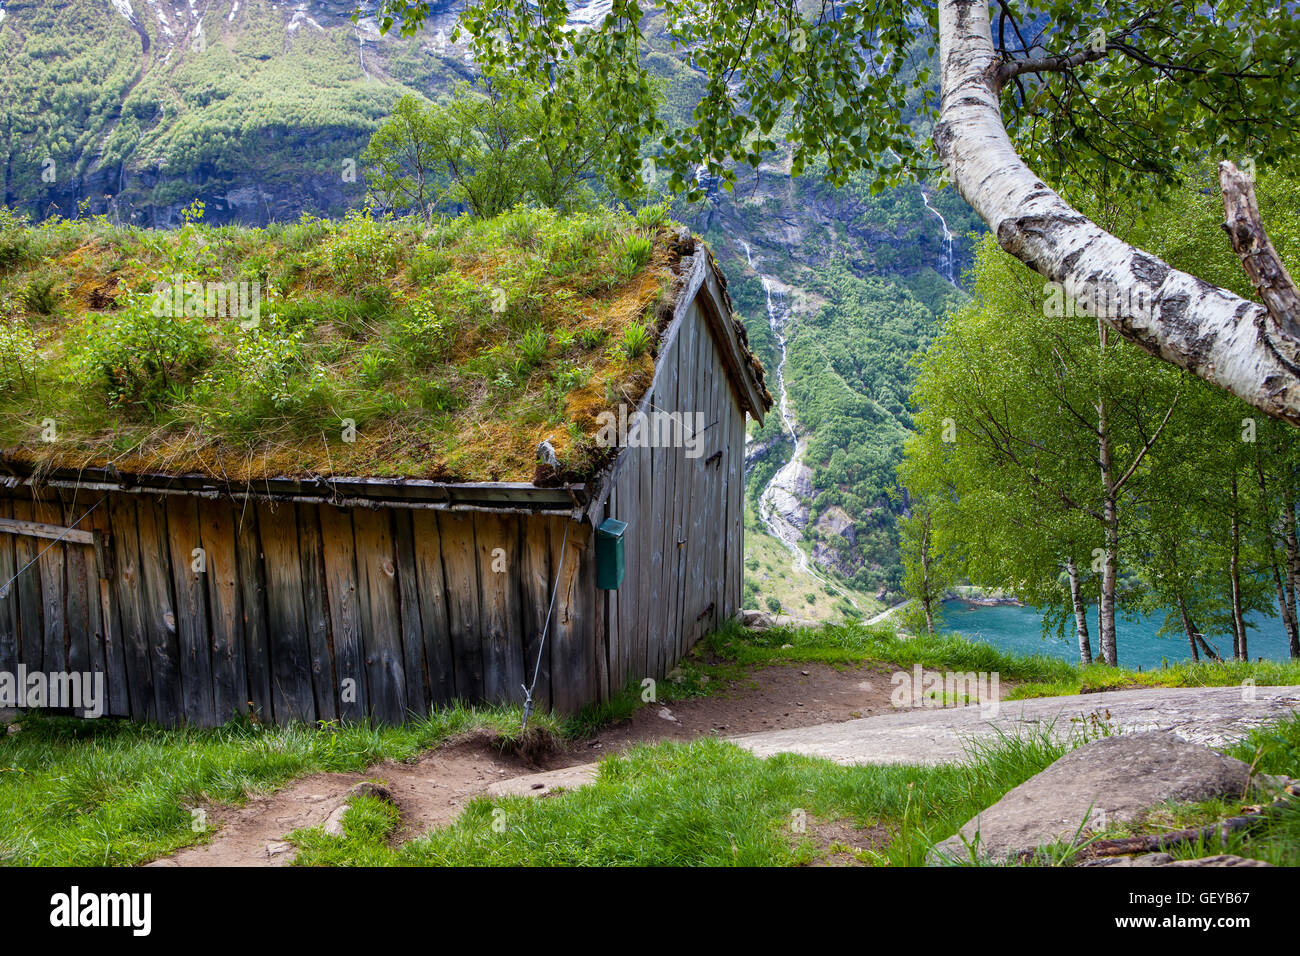 Wooden hut at Vesterasfjellet view point at Geiranger Fjord, Norway - Stock Image